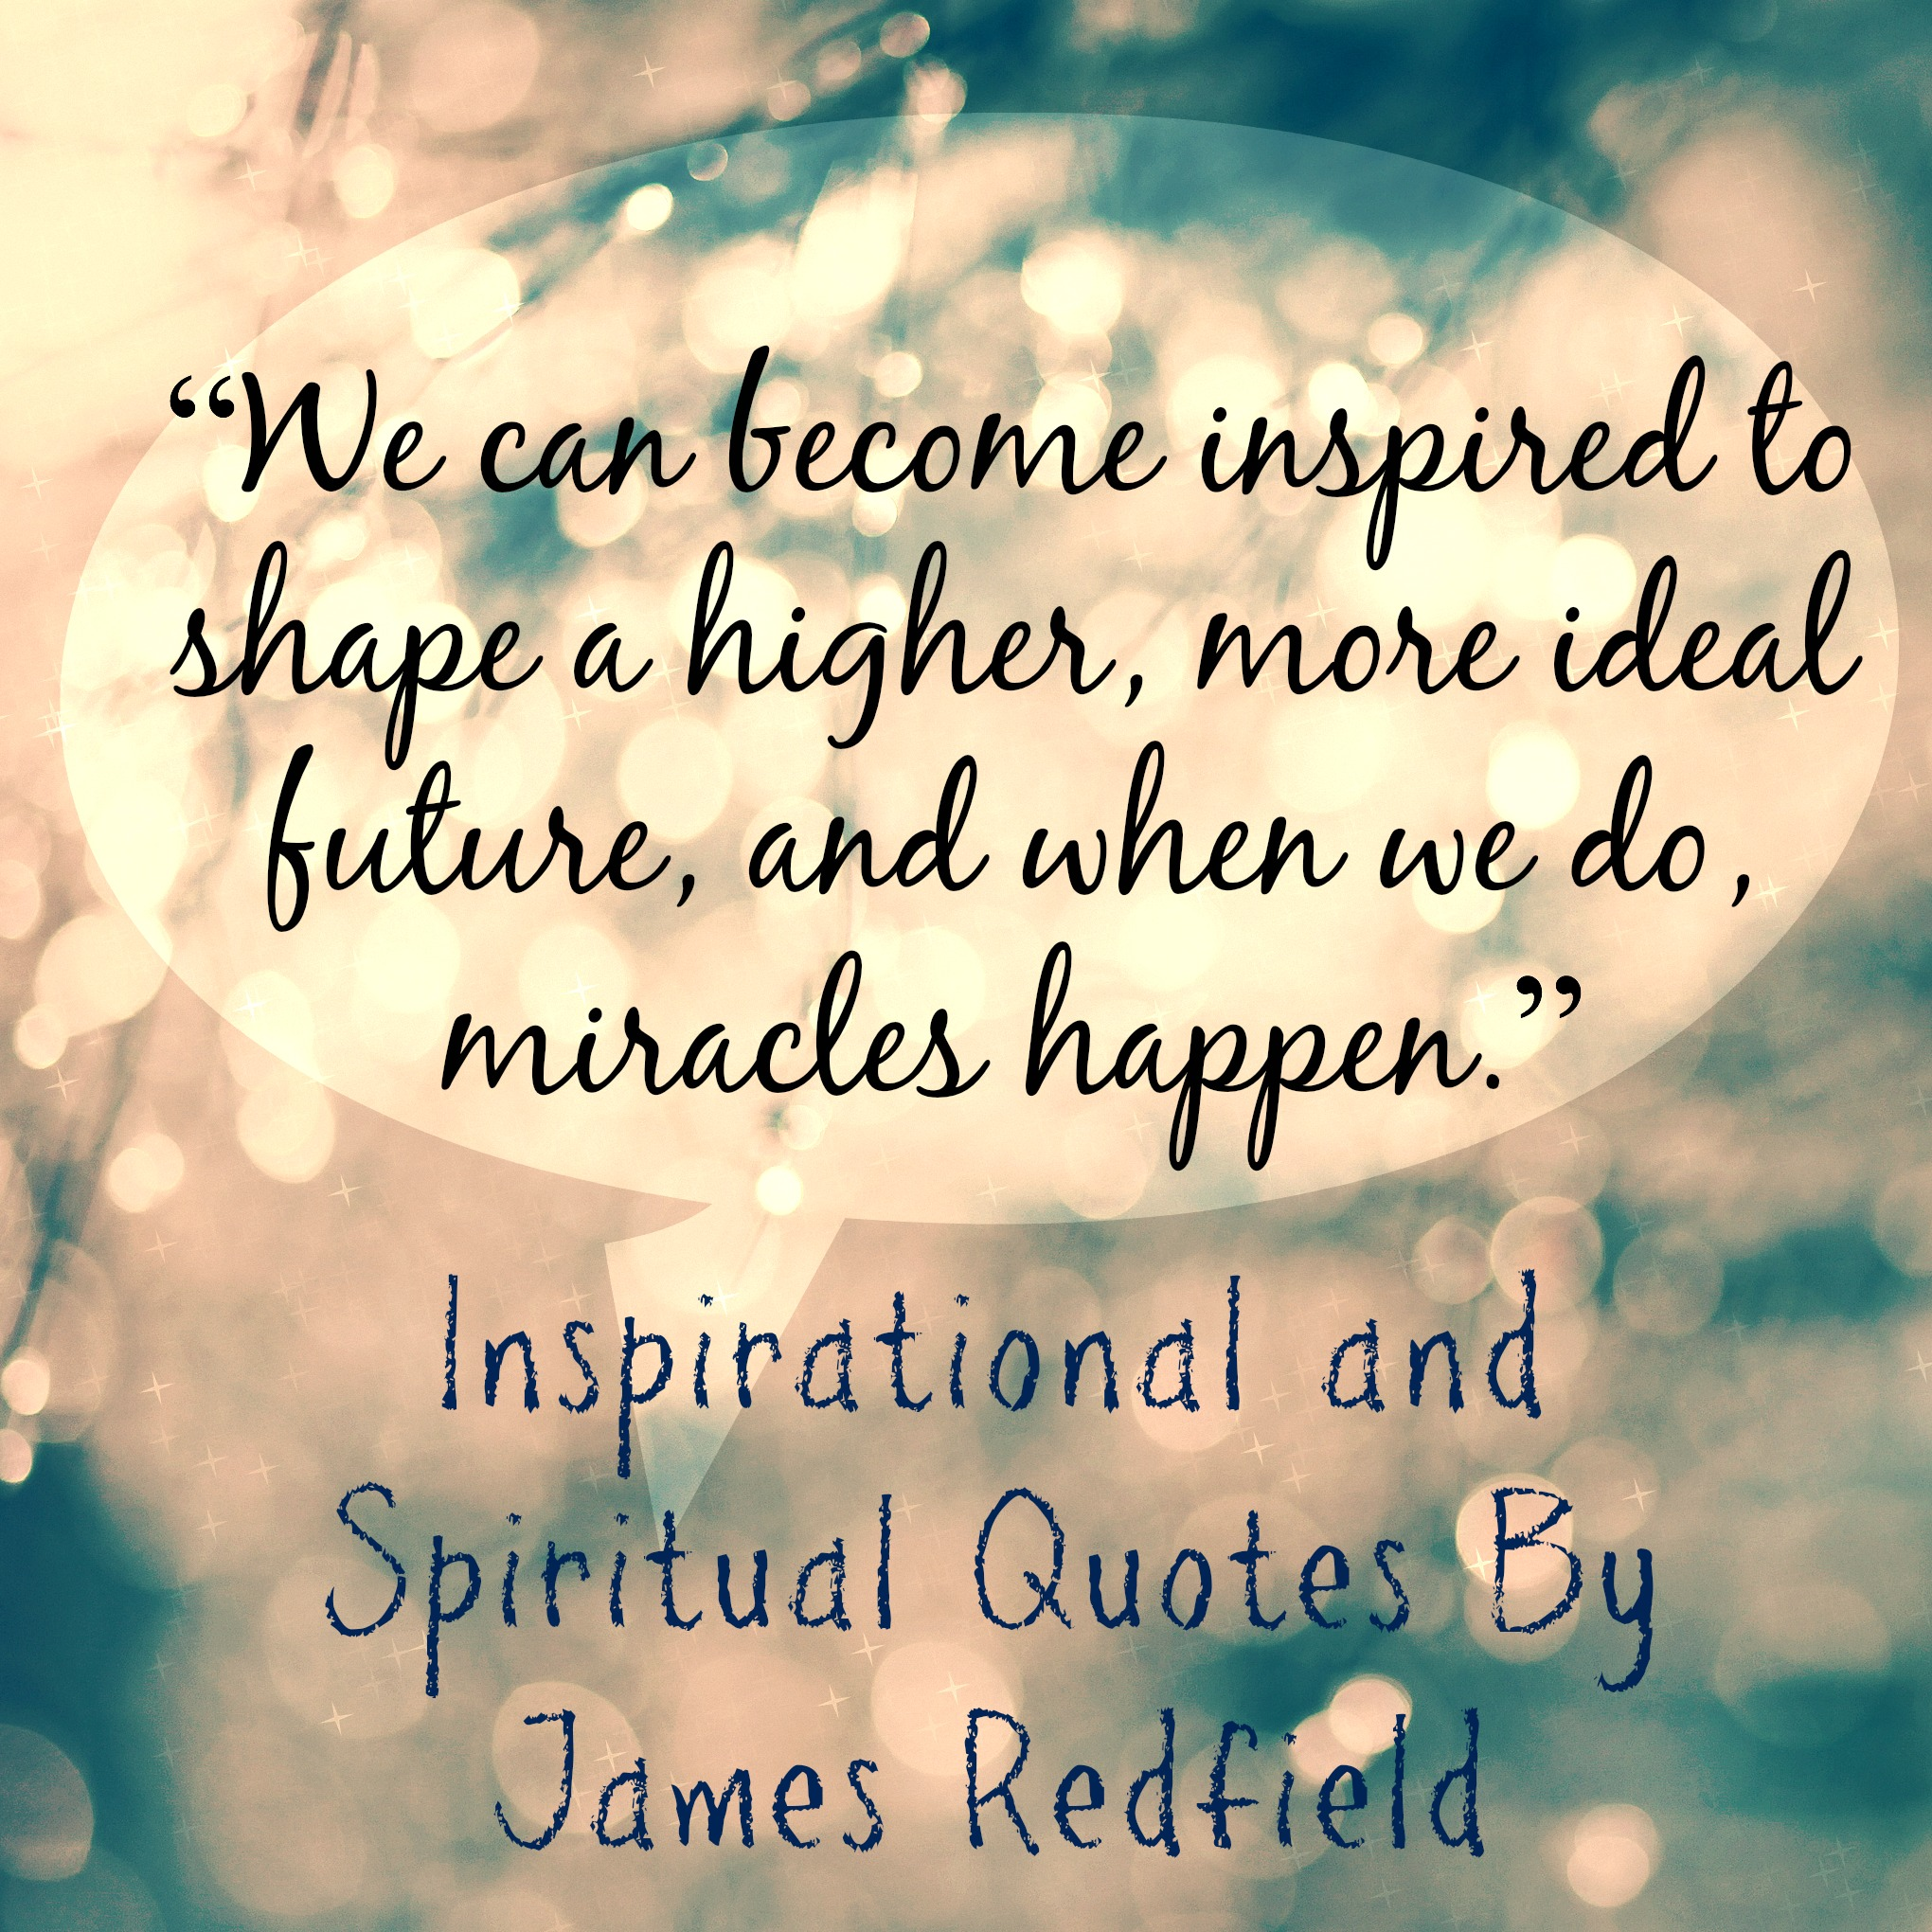 Spiritual Uplifting Quotes: Inspirational Quotes About Vision. QuotesGram